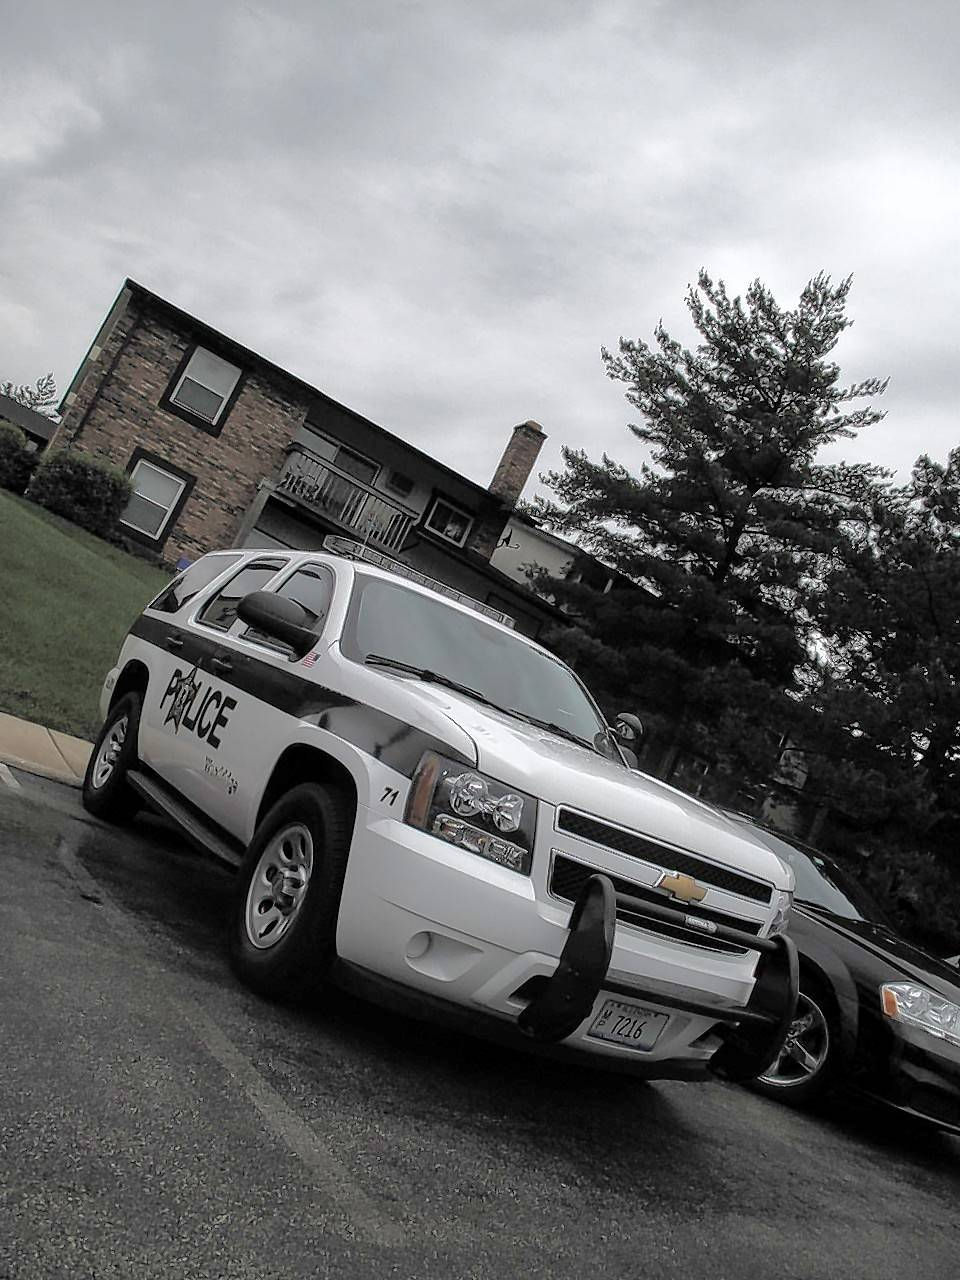 A Woodridge police car sits outside an apartment on the 7700 block of Fox Drive, where a husband and wife were found shot to death late Monday. The DuPage County coroner's office is conducting autopsies on the victims Tuesday.